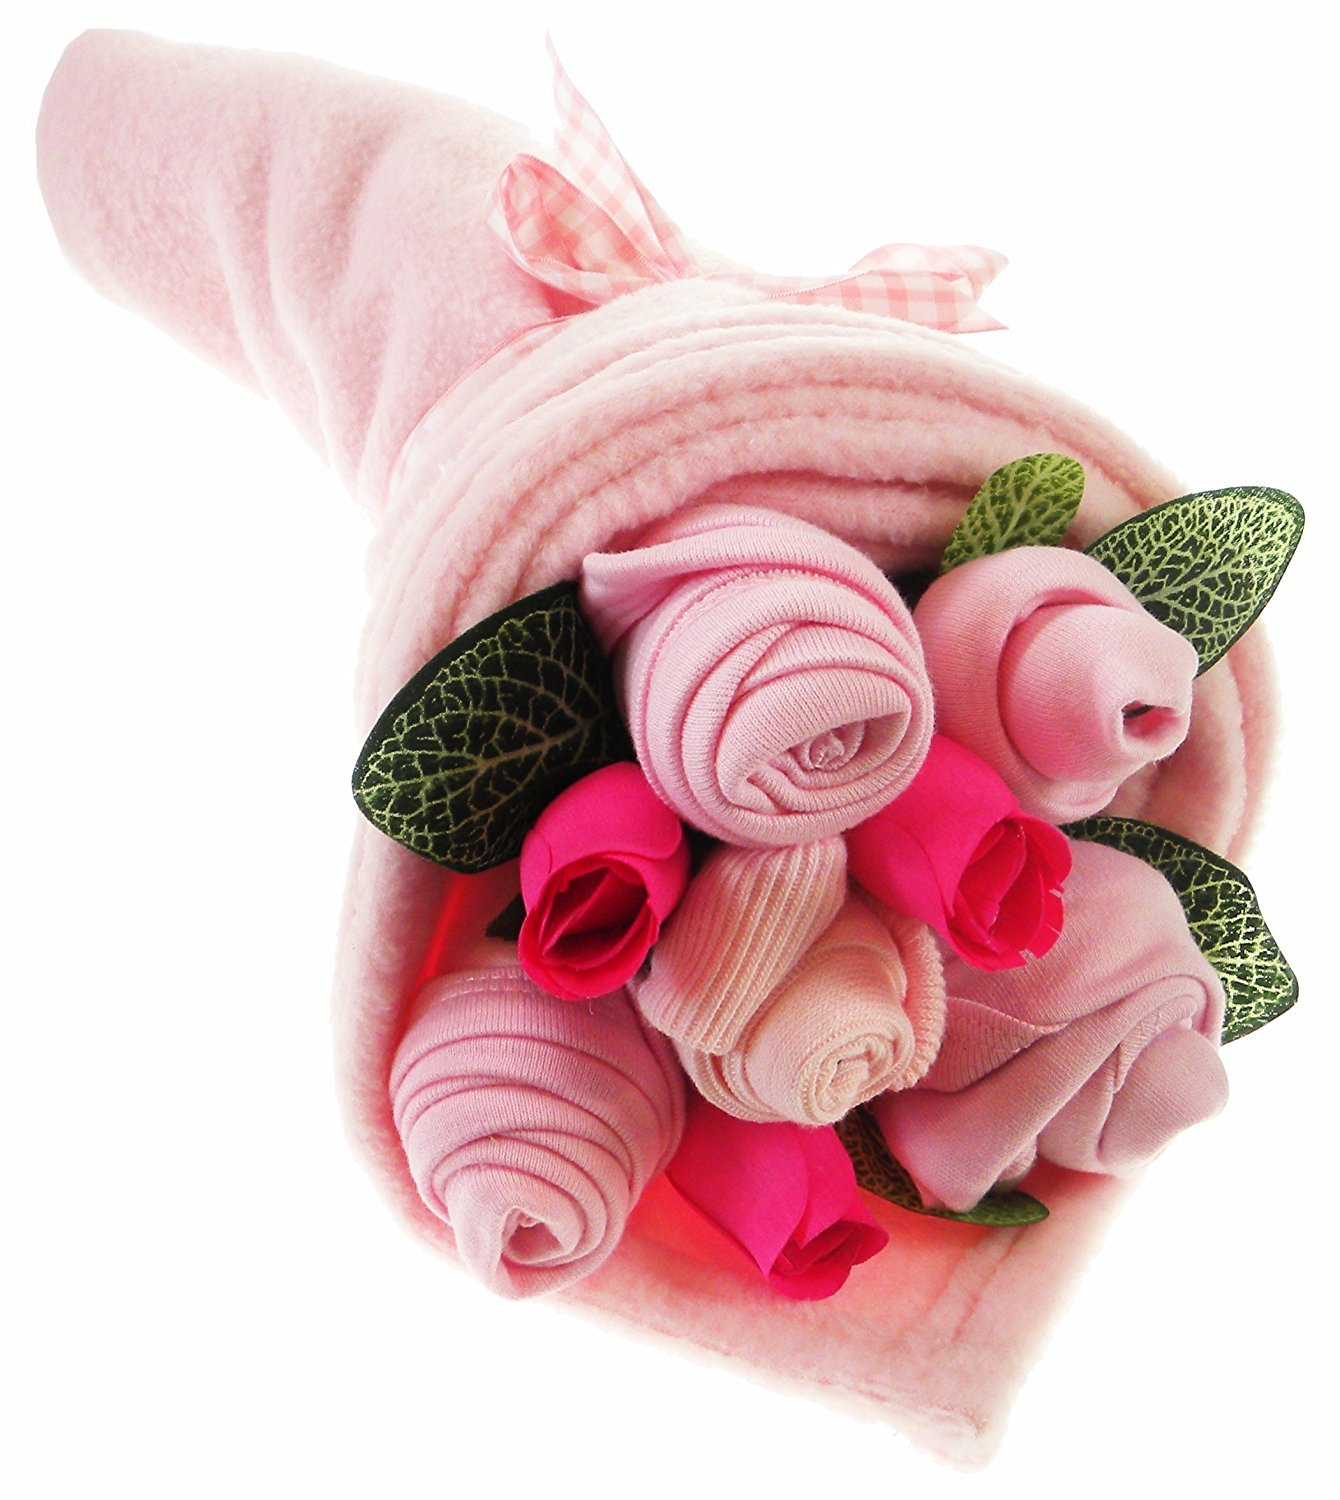 Say It Baby Traditional Baby Pinks Clothes Bouquet Gift Set TRADGBQT